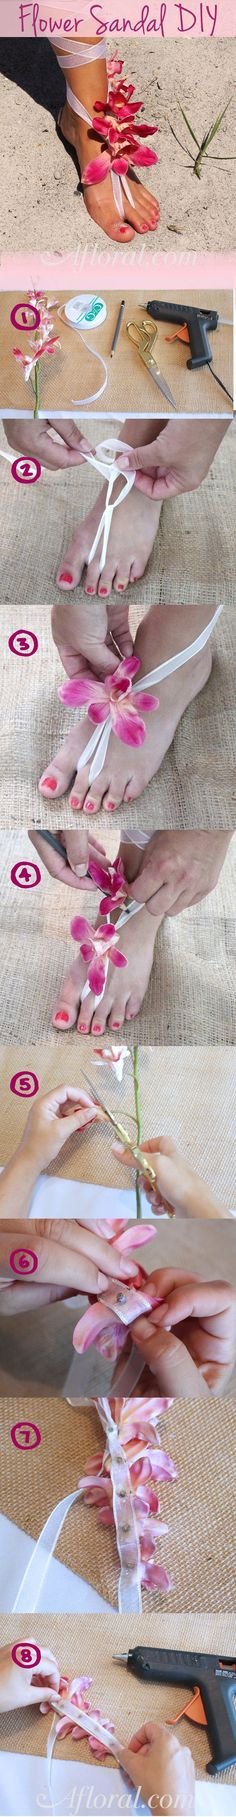 Beach wedding sandal!! So pretty! Made from silk flowers this DIY sandal is a perfect complement to your beautiful beach wedding day! And so easy to make! #beachsandal